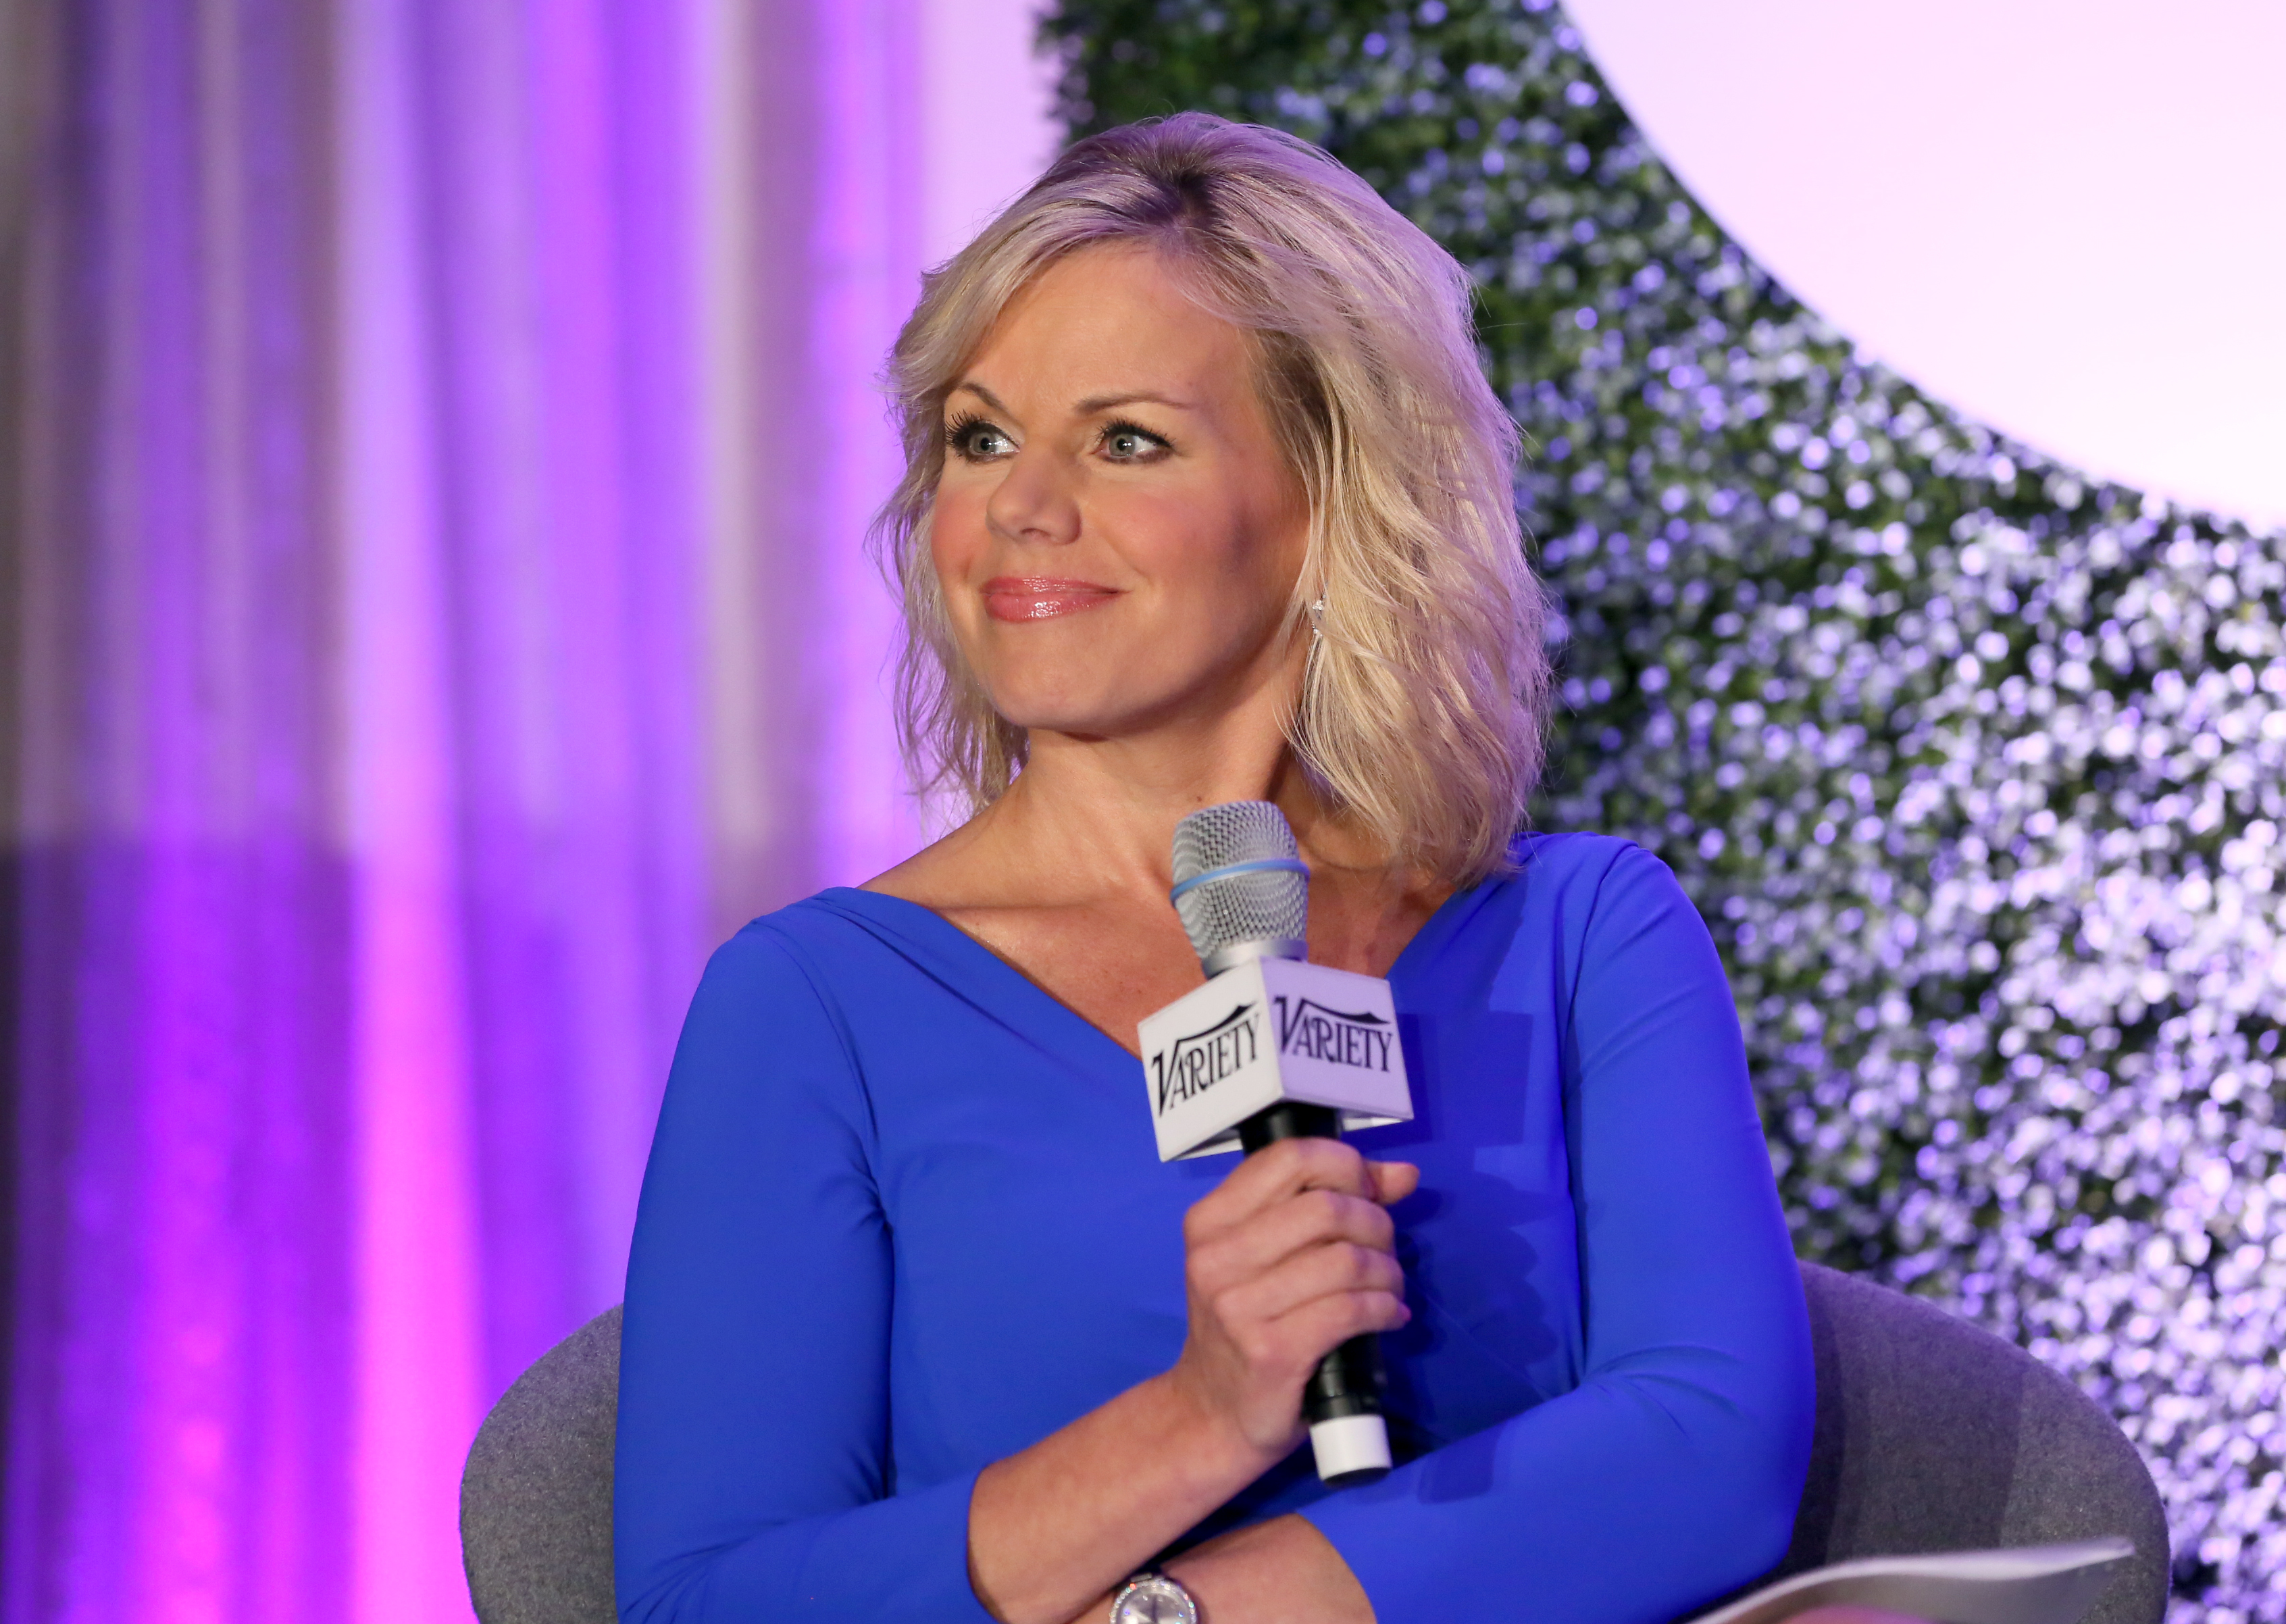 Fox News Channel Host Gretchen Carlson speaks onstage during  a summit in Beverly Hills, California on June 12, 2014.